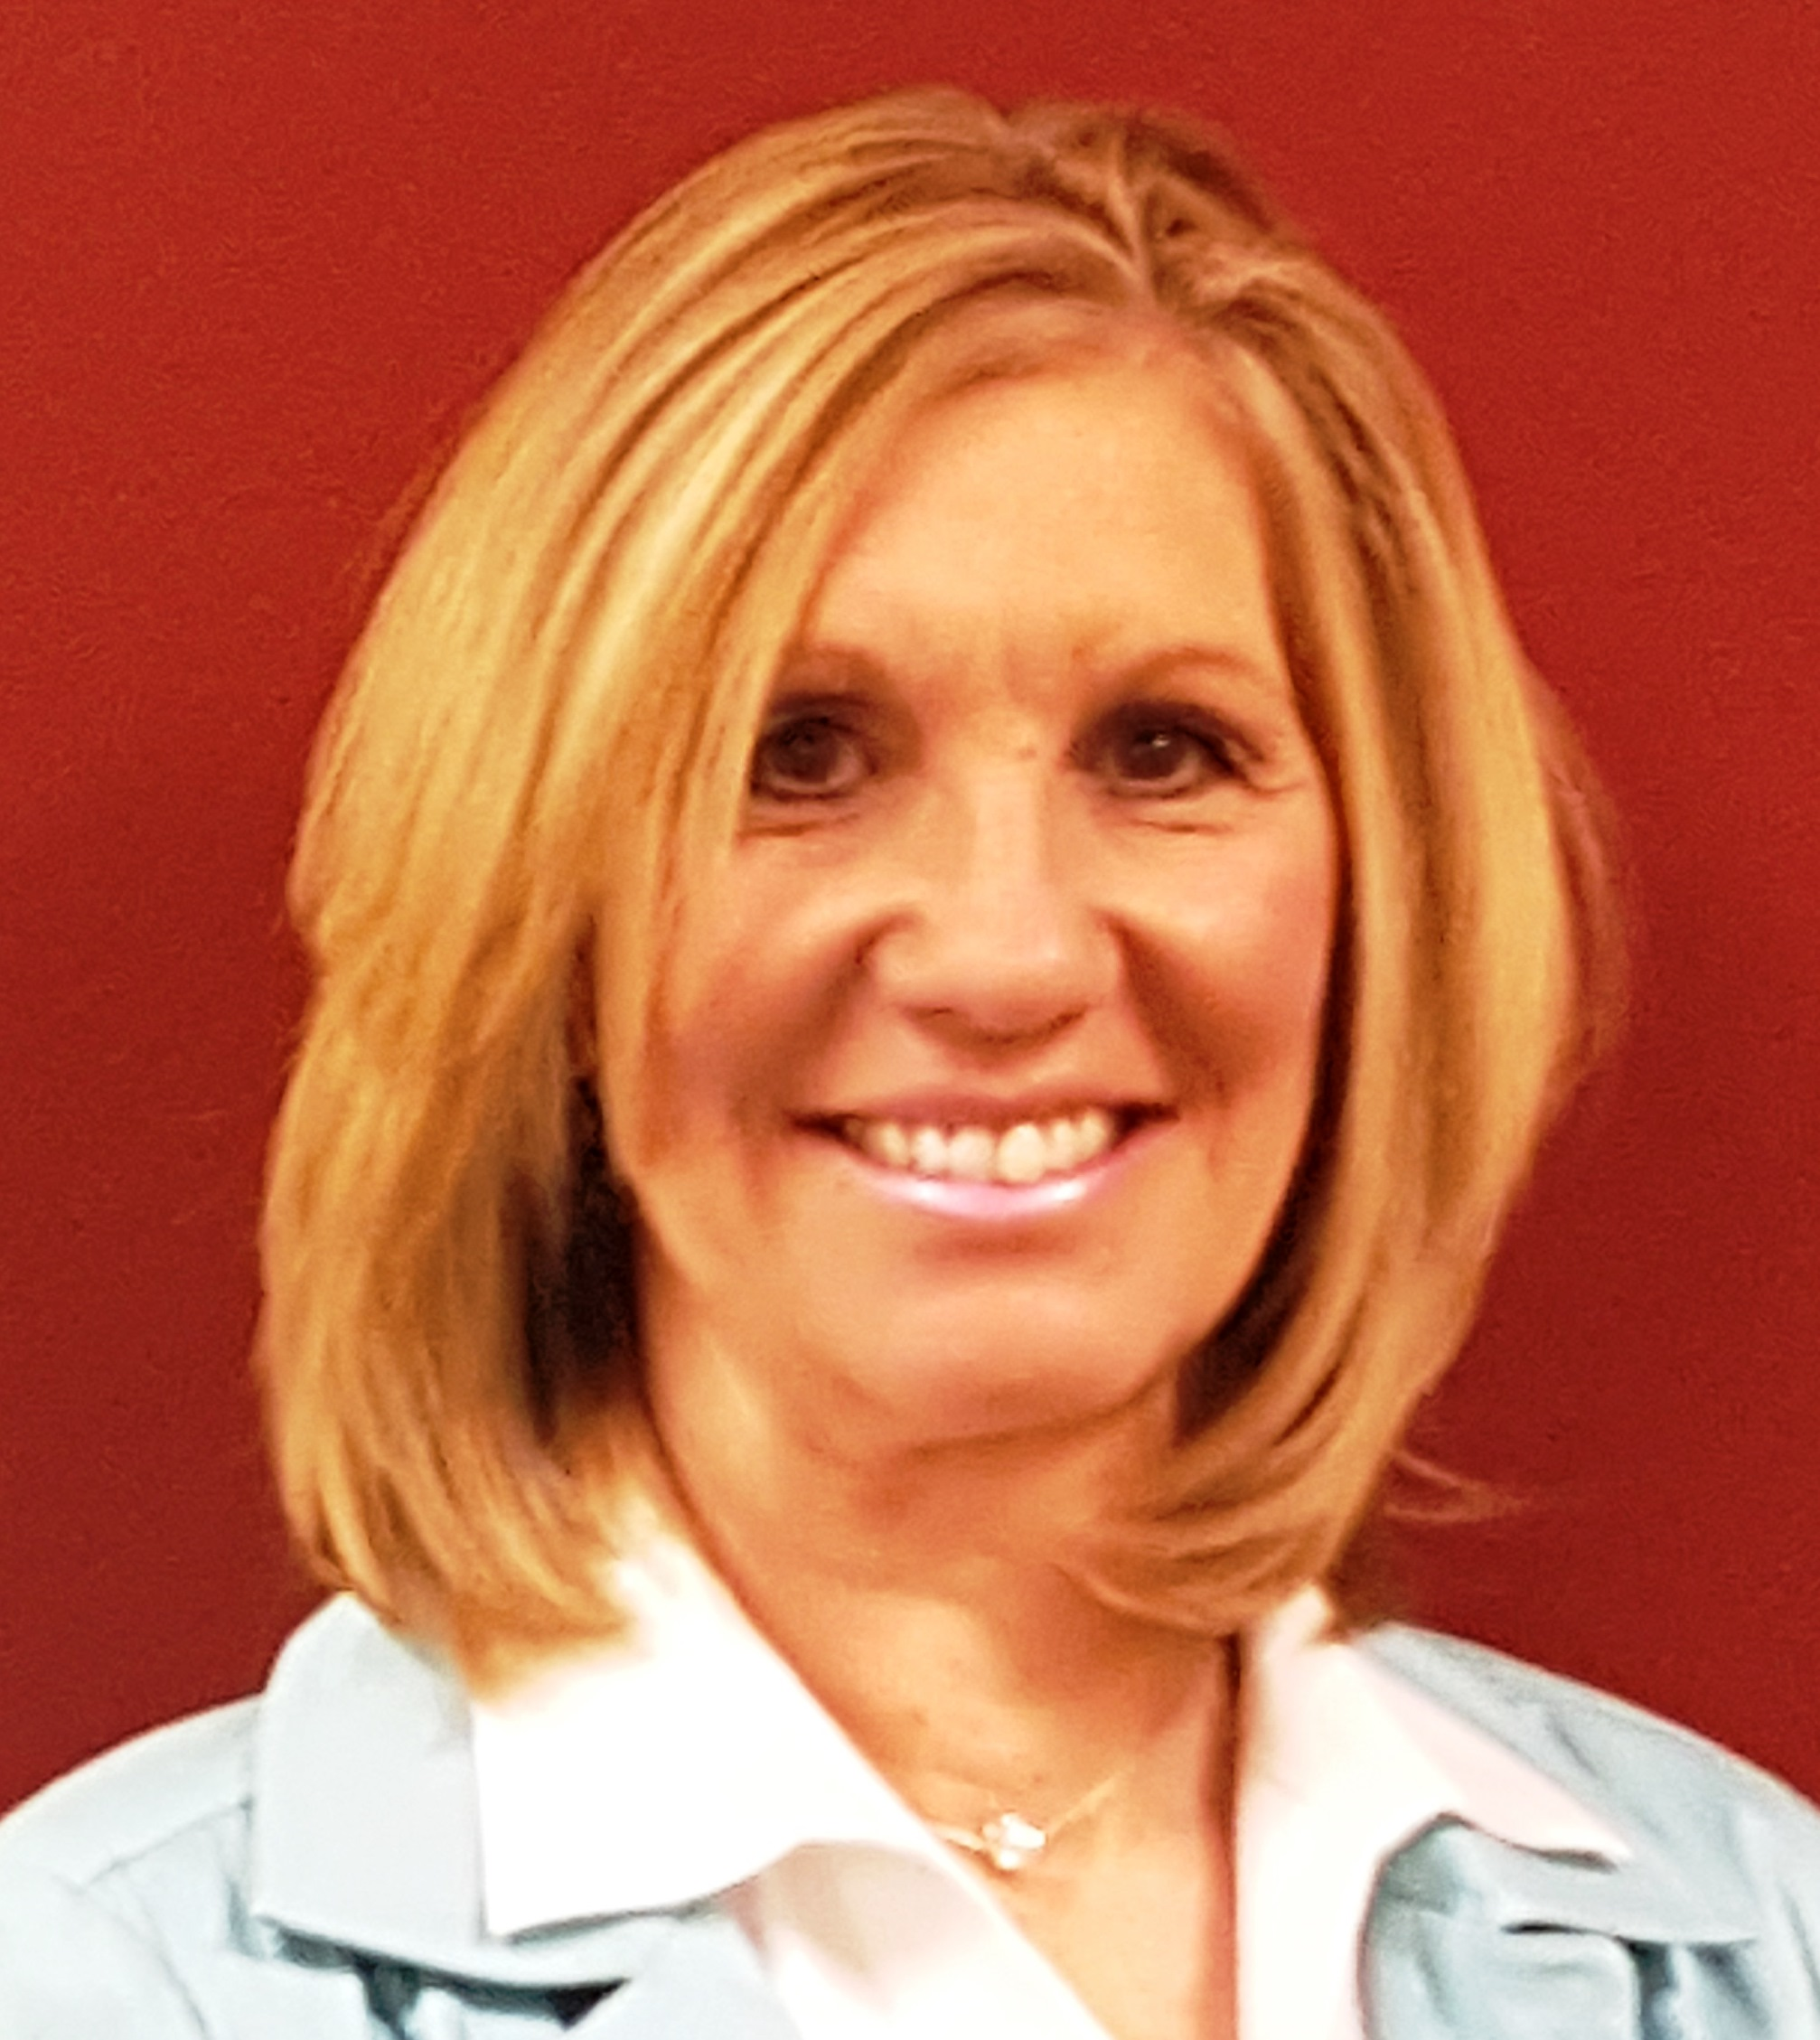 Garden state physical therapy - Cathy Scarpitto Procare Physical Therapy